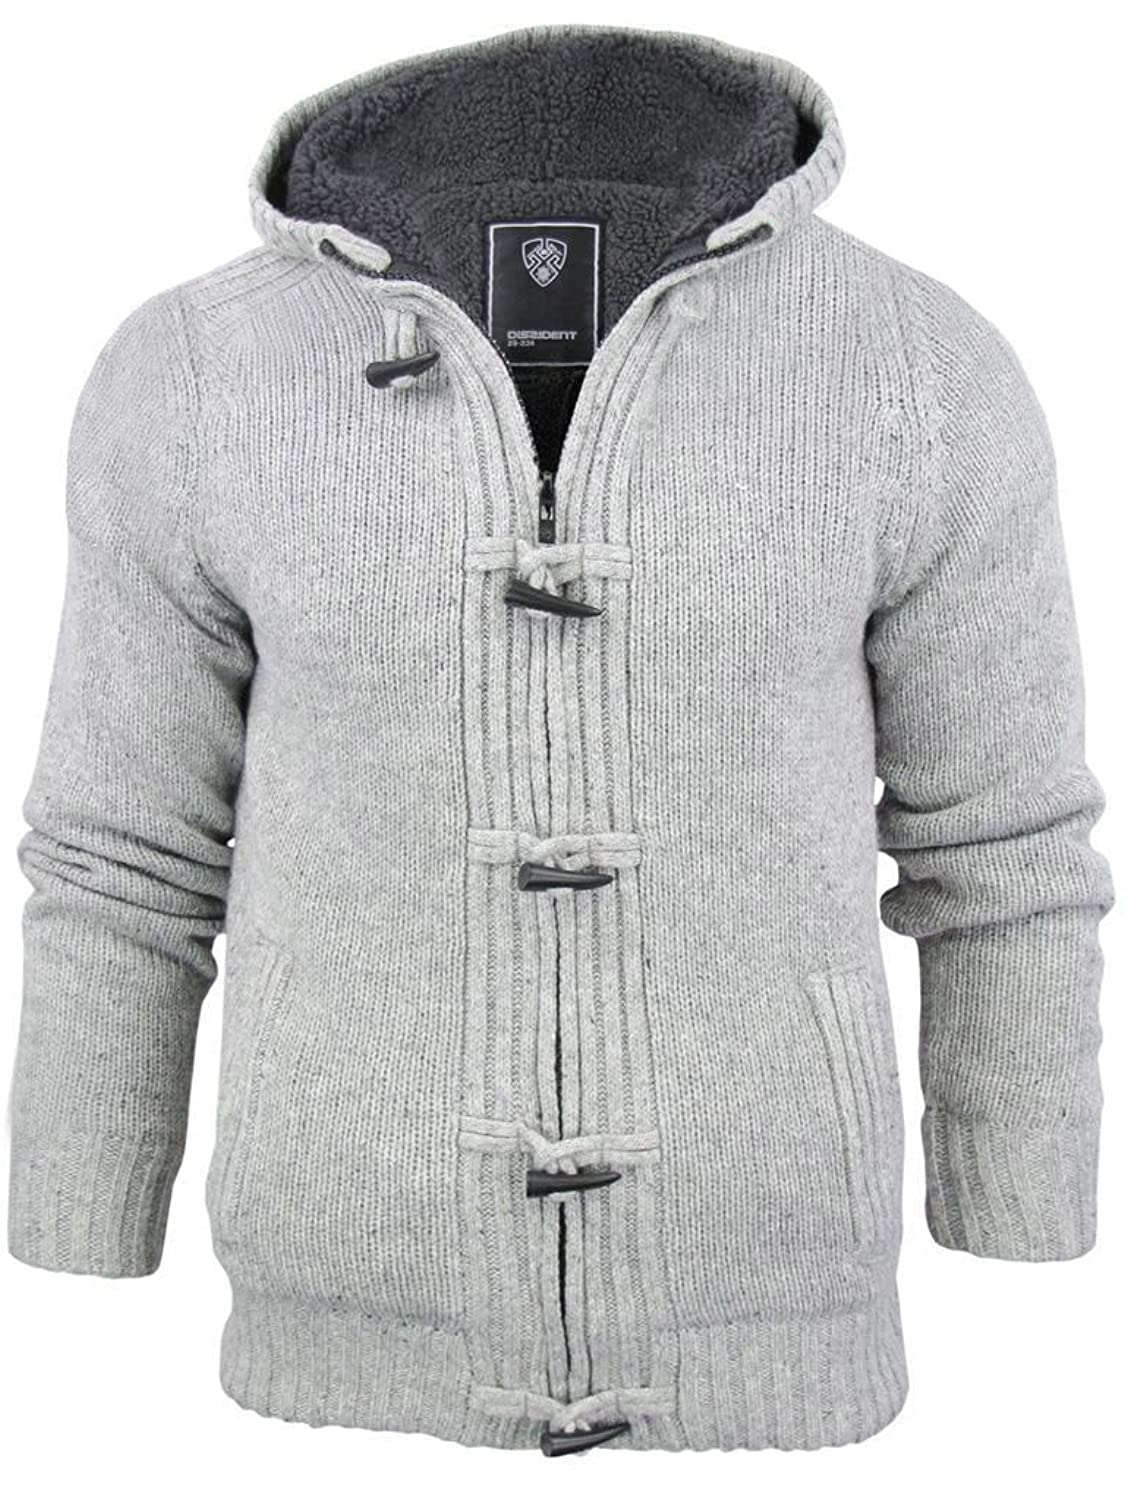 MENS FLEECE LINED CHUNKY KNIT HOODED CARDIGAN (Large, Oatmeal ...